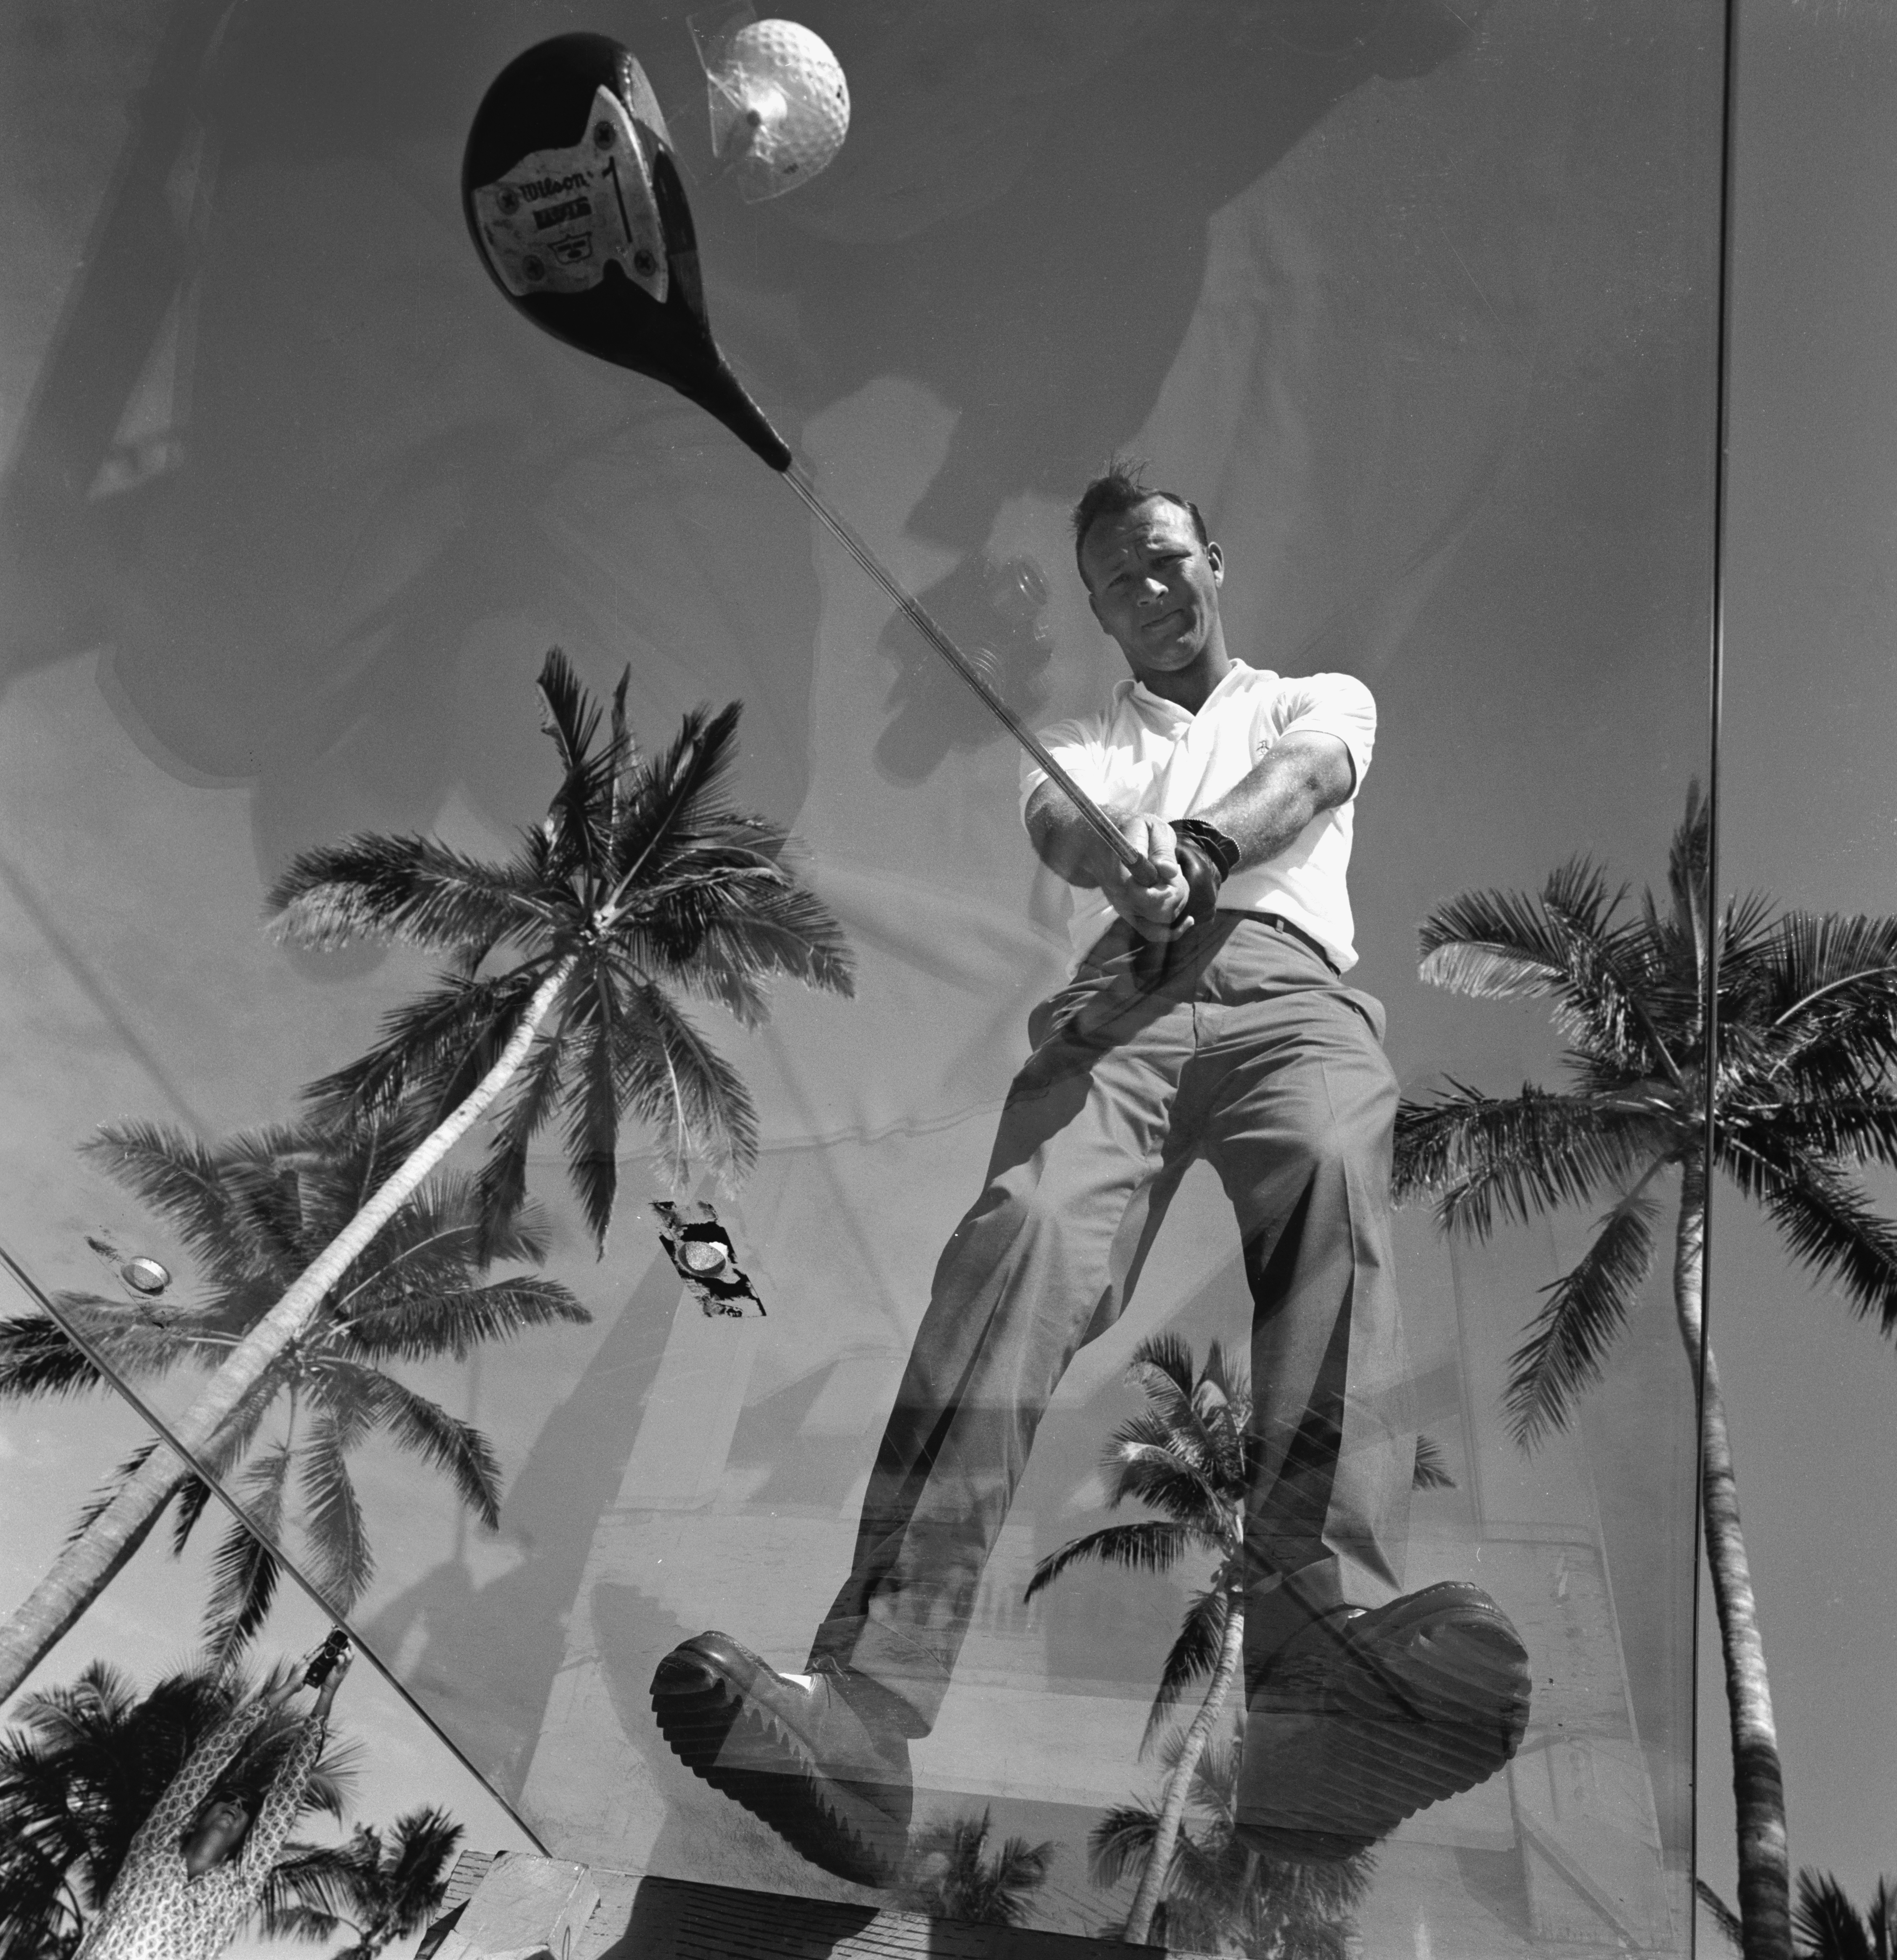 Arnold Palmer stands on a sheet of glass and prepares to demonstrate his swing in Miami, in December 1960.